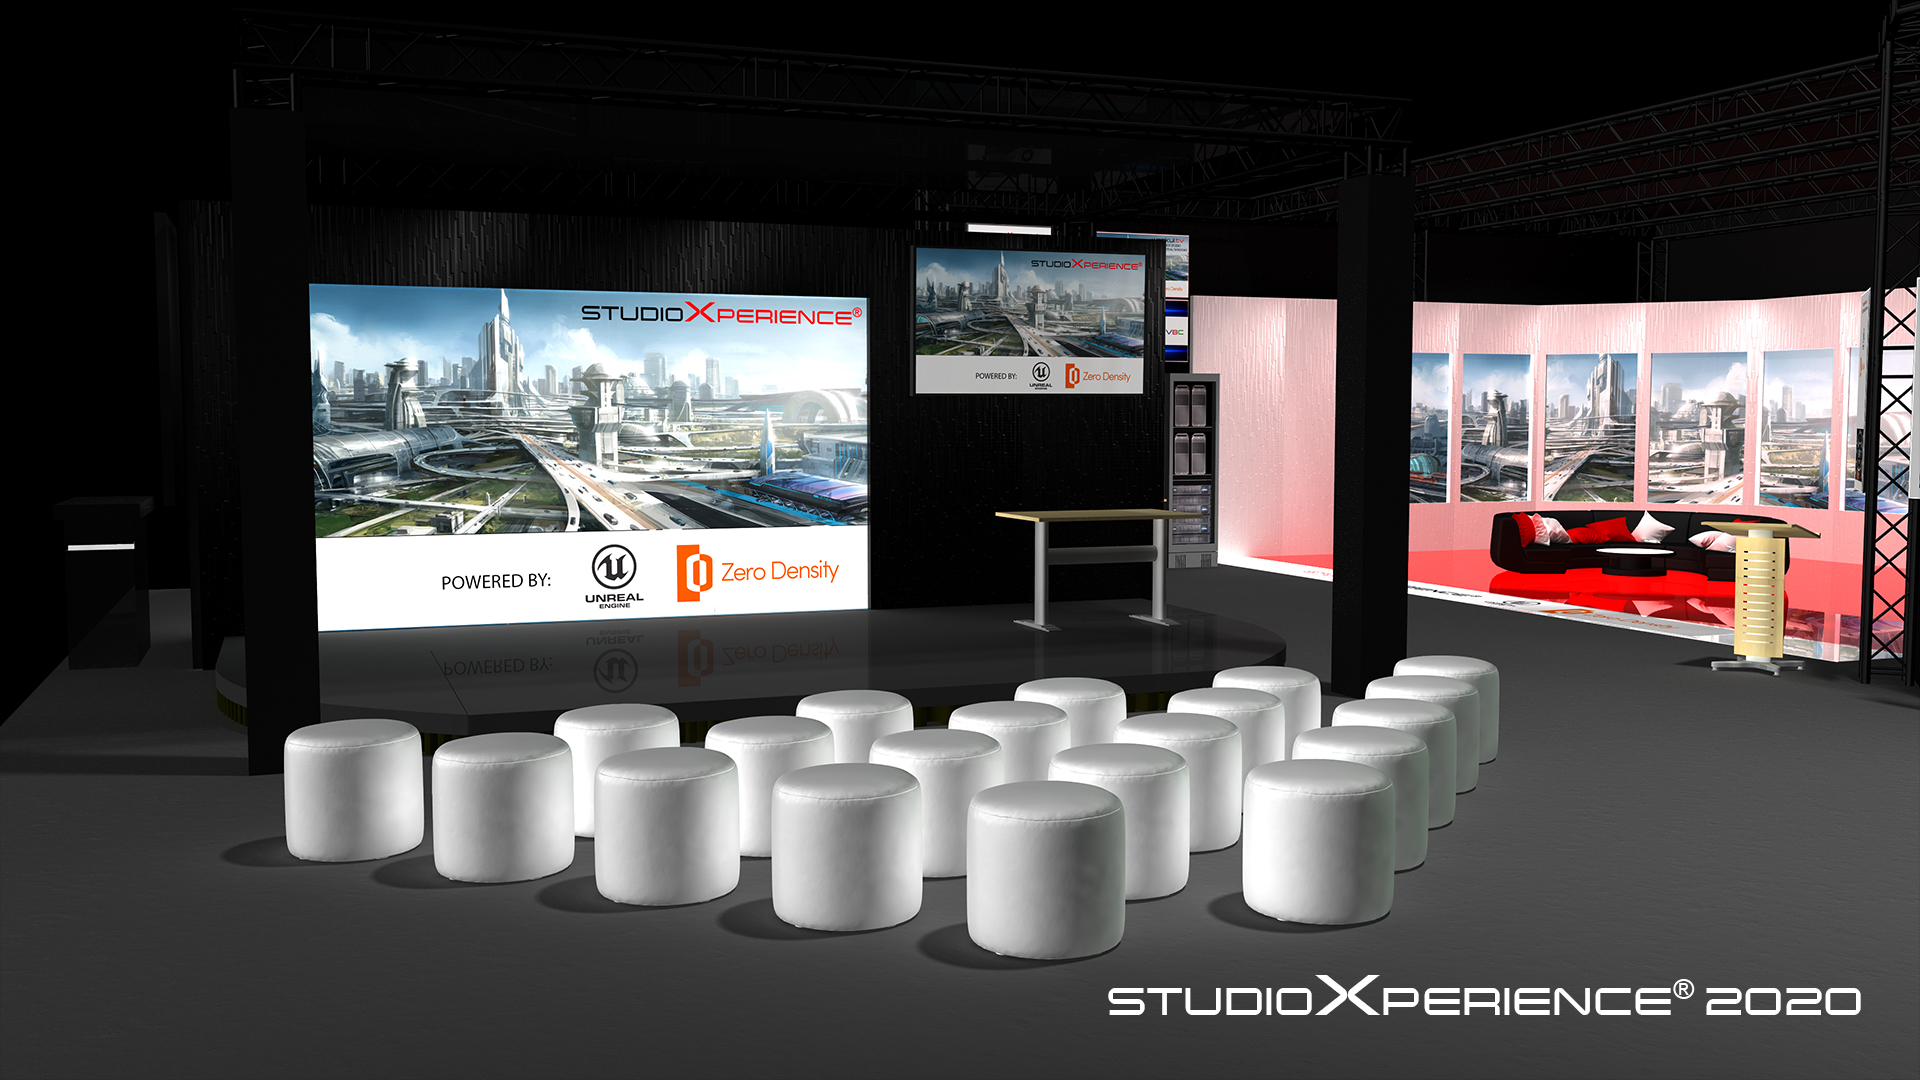 StudioXperience Presentation Theater at the 2020 NAB Show